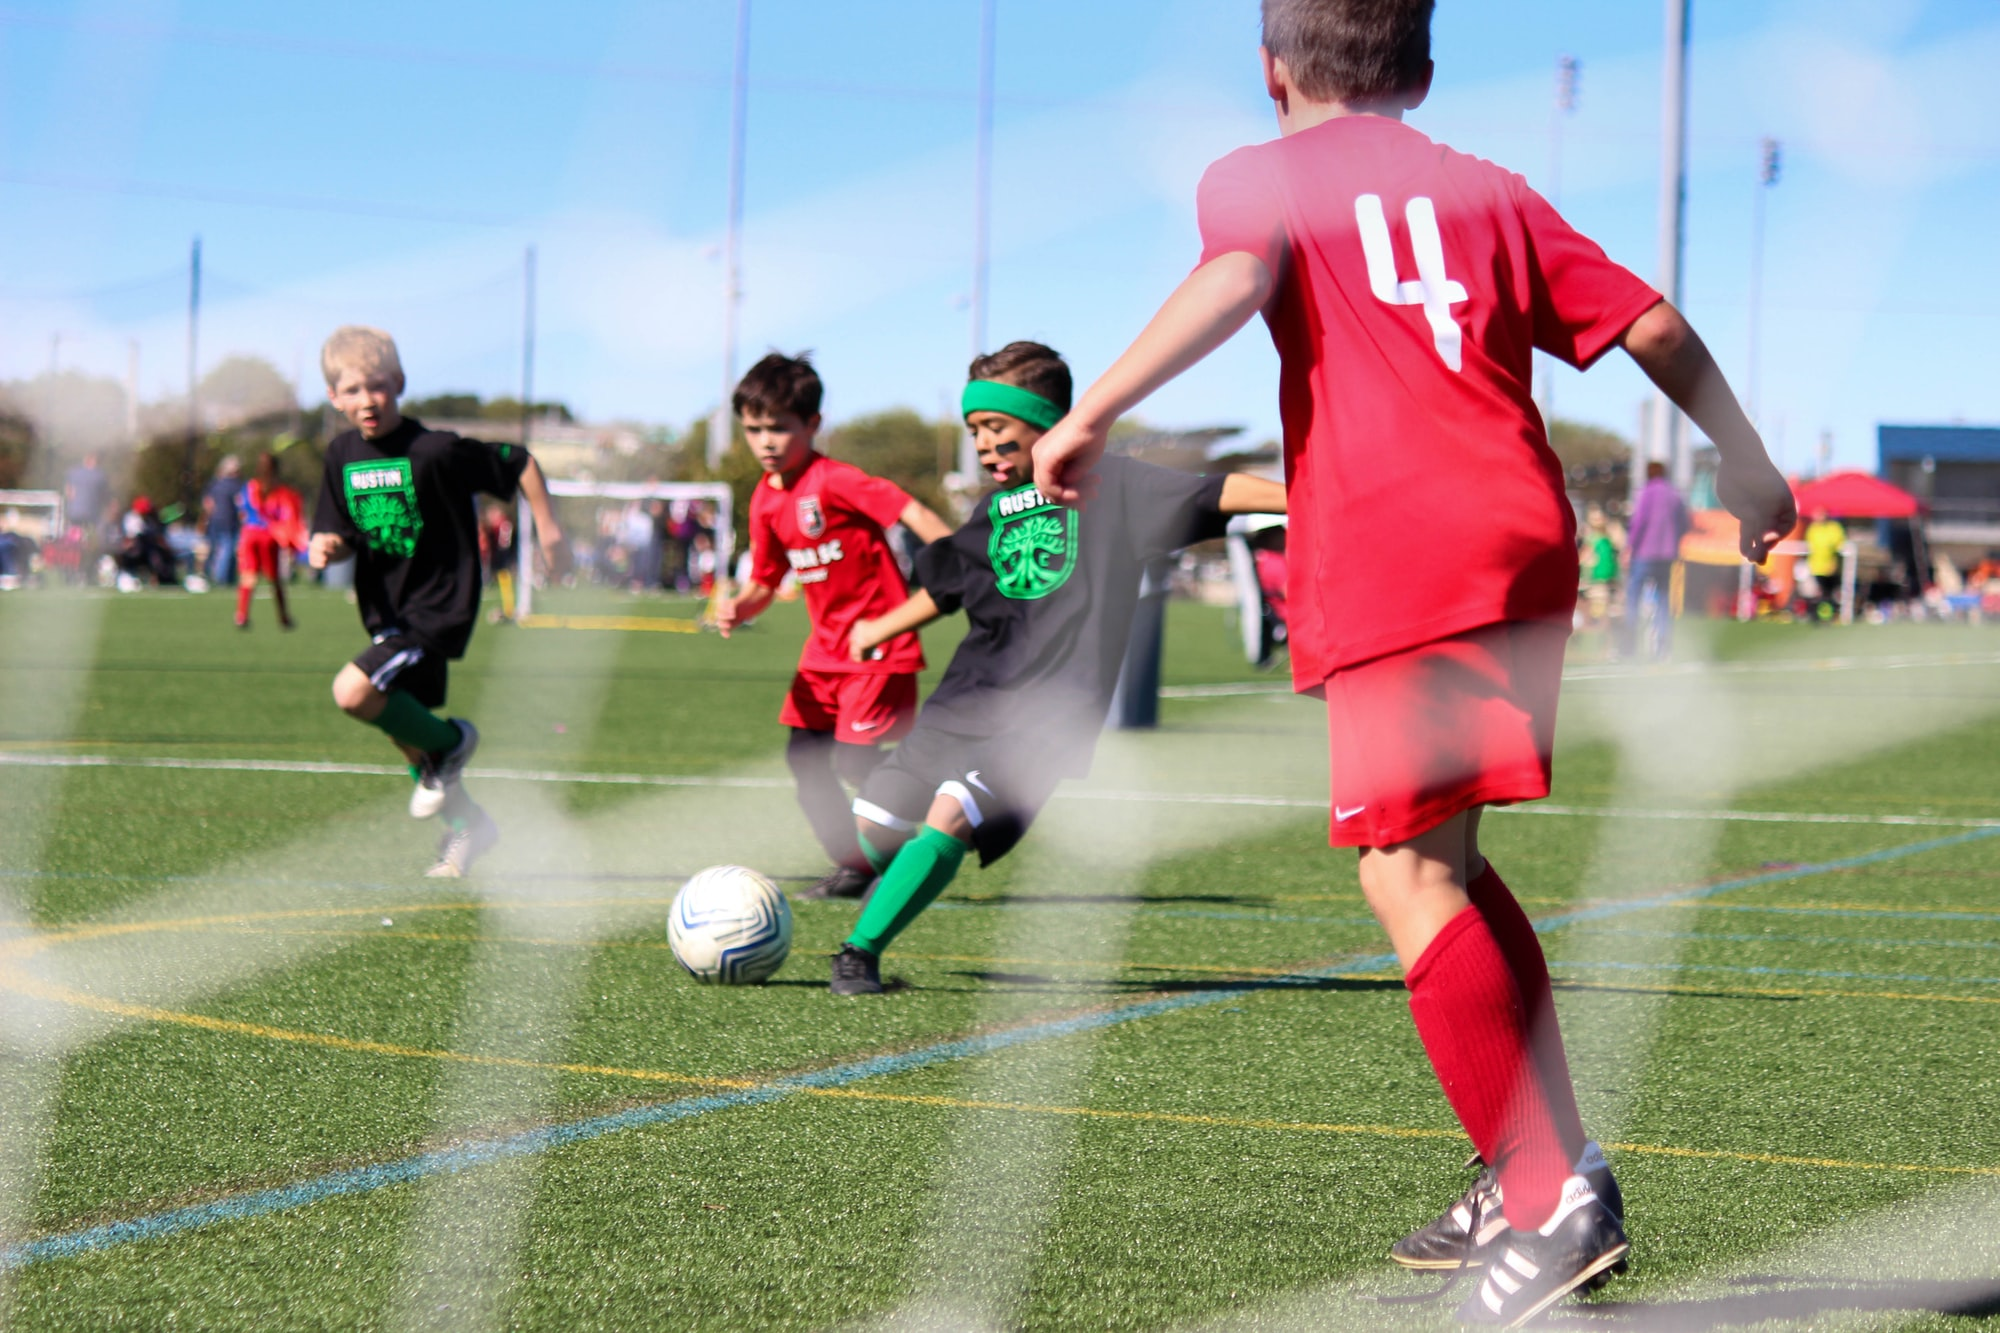 Israel's Playform provides AI powered soccer training solution to Washington youth players